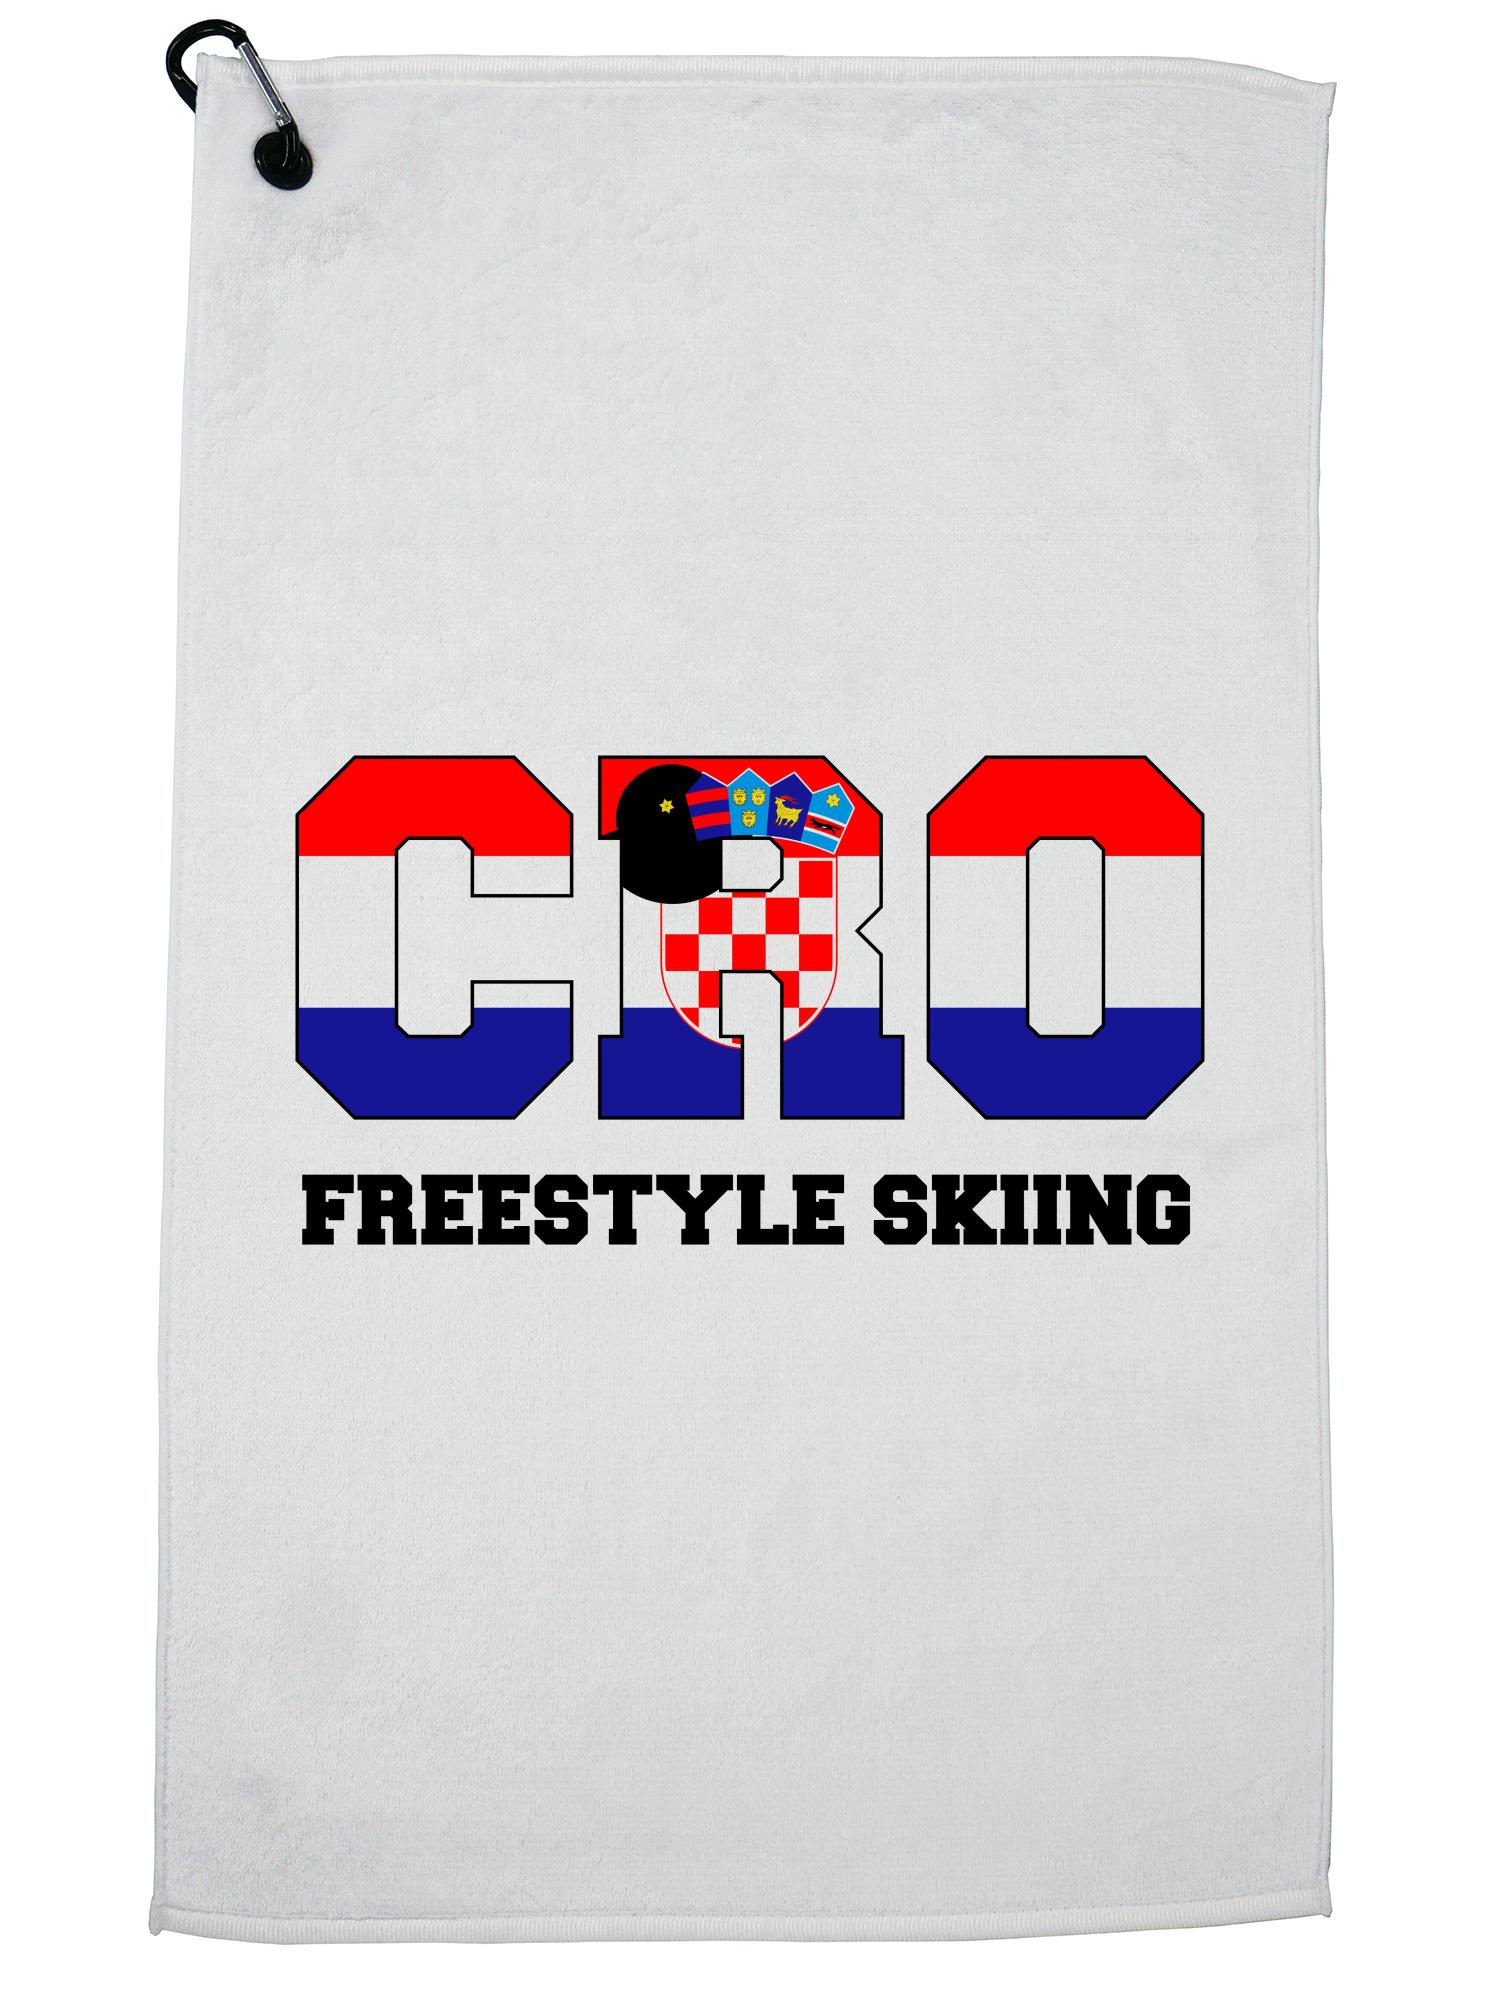 Croatian Freestyle Skiing Winter Olympic CRO Flag Golf Towel with Carabiner Clip by Hollywood Thread